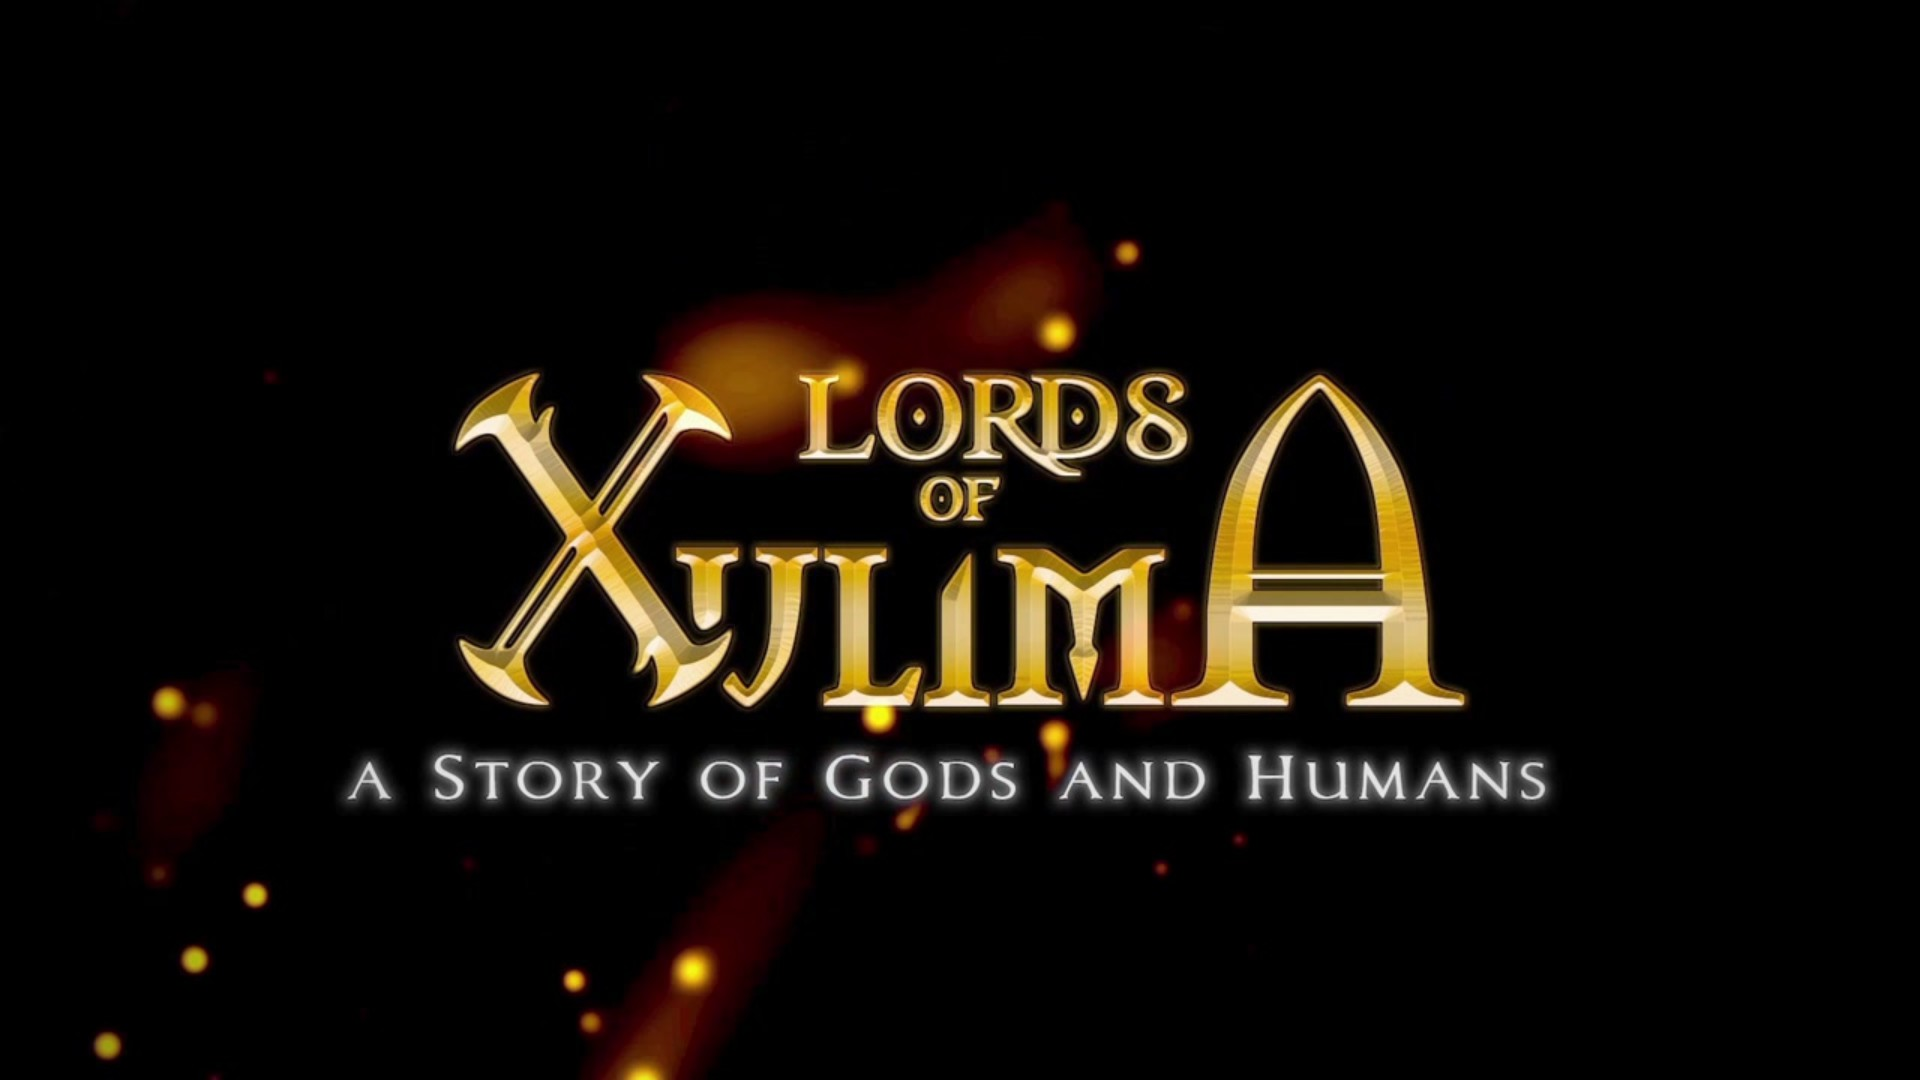 [TEST] Lords of Xulima – la version pour Steam